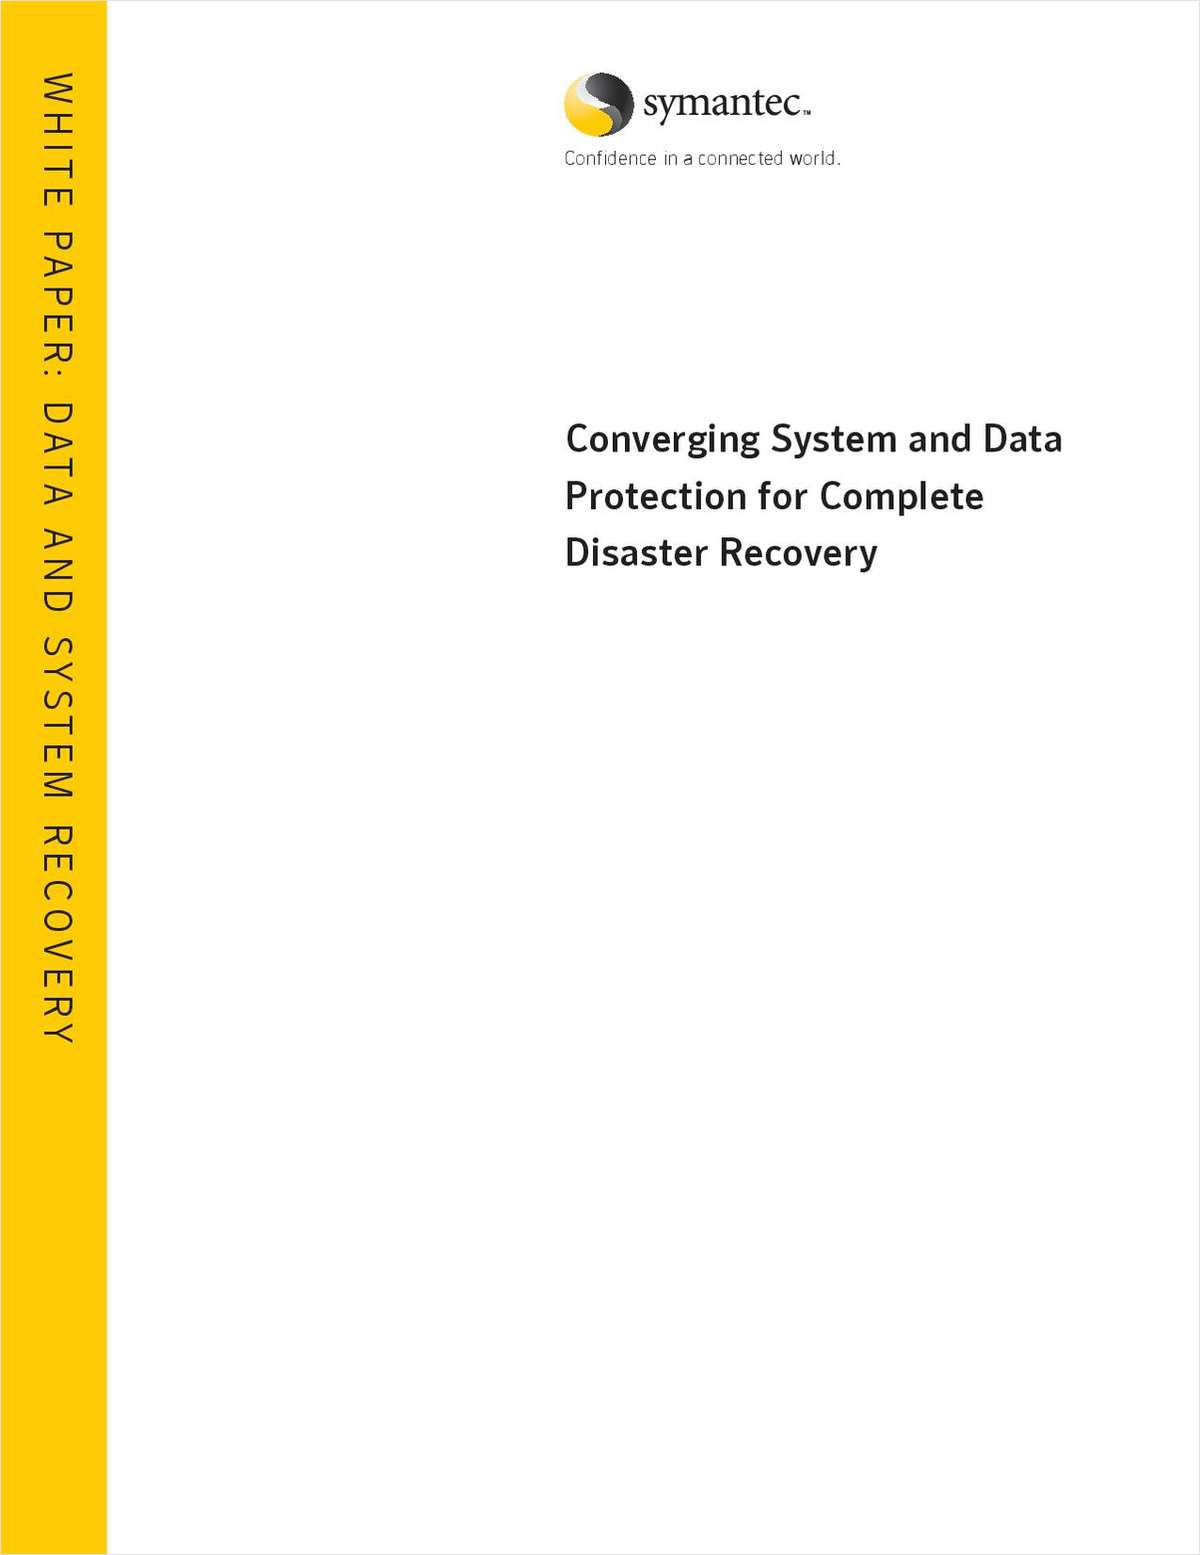 Converging System and Data Protection for Complete Disaster Recovery